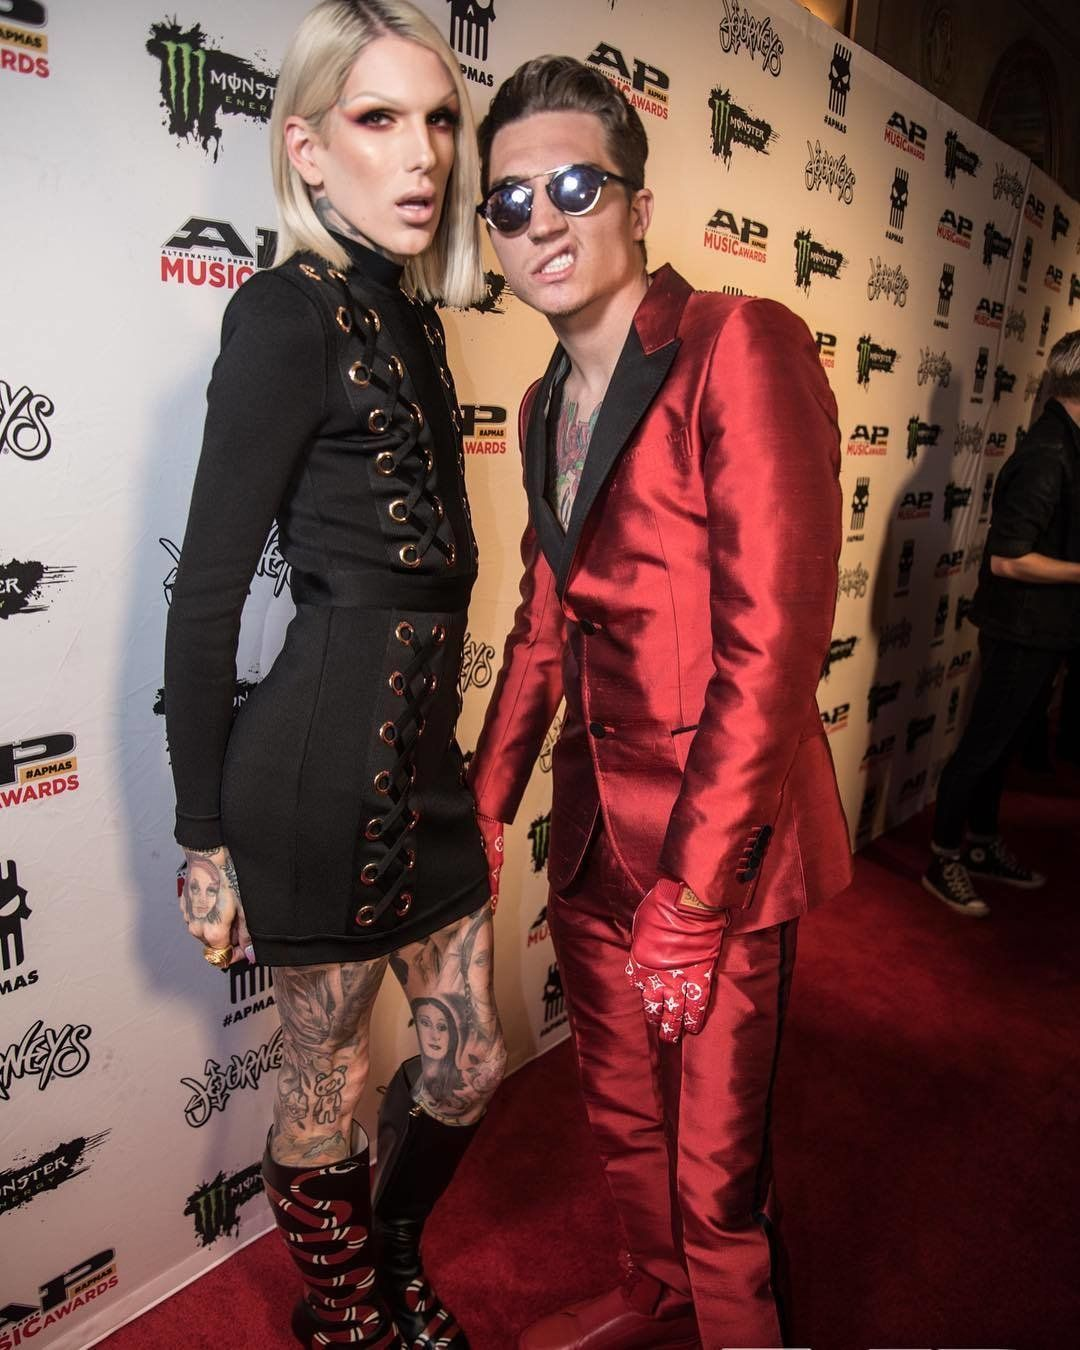 Nathan Loves The Gloves So Much He S Already Worn Them Here He S Rocking Them On The Alternative Press Music Awards Red Carpet Jeffree Star Jefree Star Jeffree Star Nathan